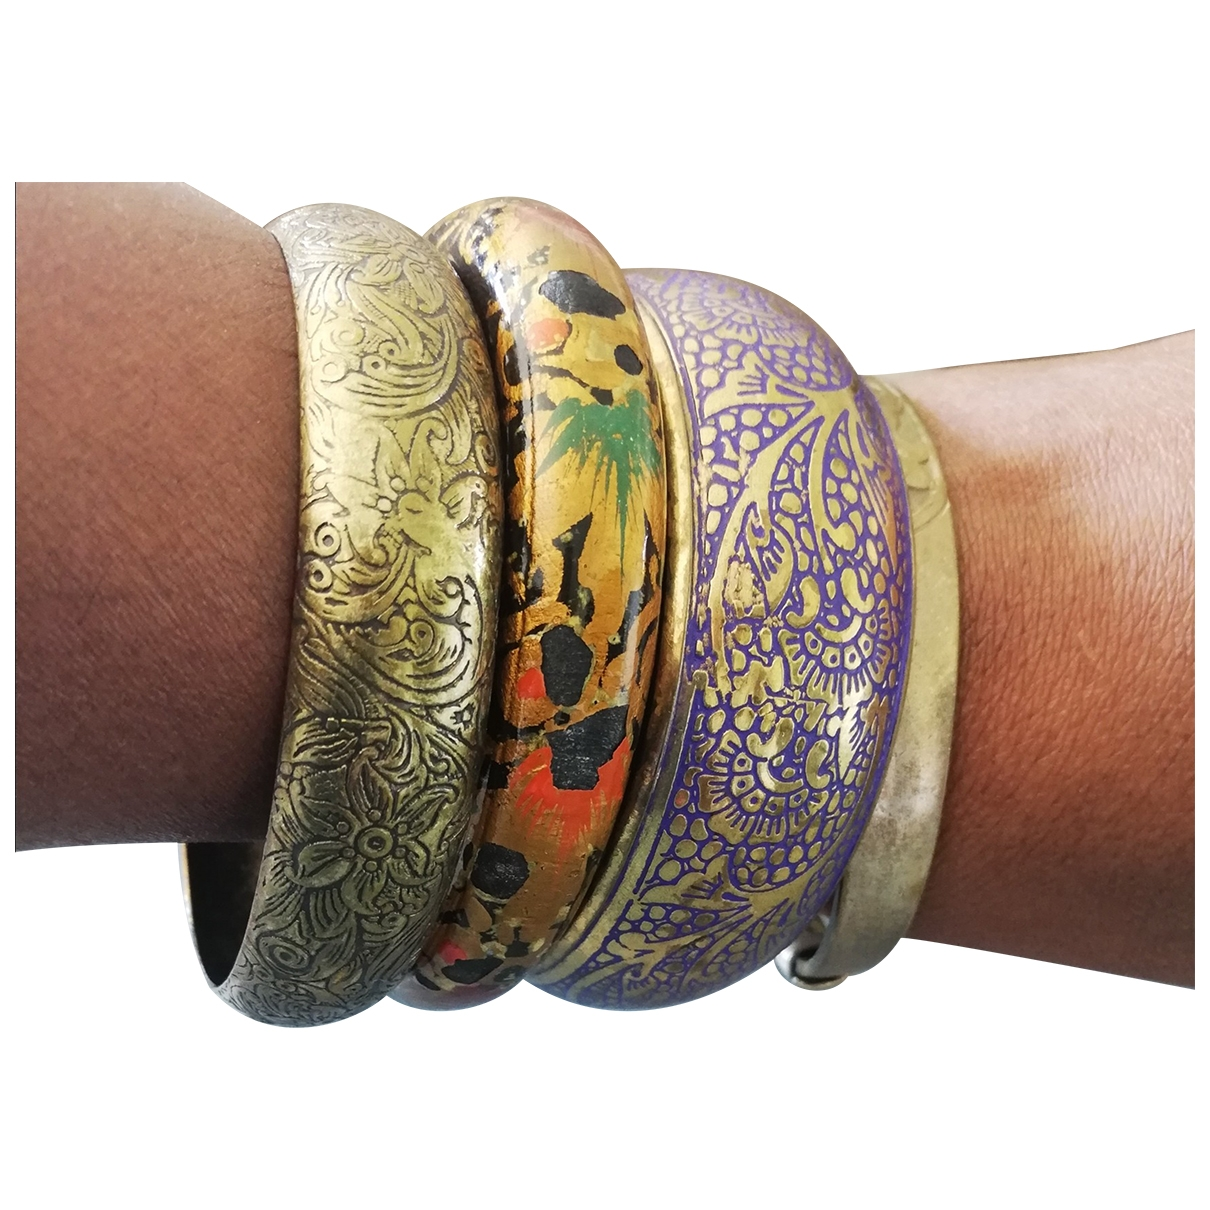 Non Signe / Unsigned Motifs Ethniques Armband in  Bunt Metall